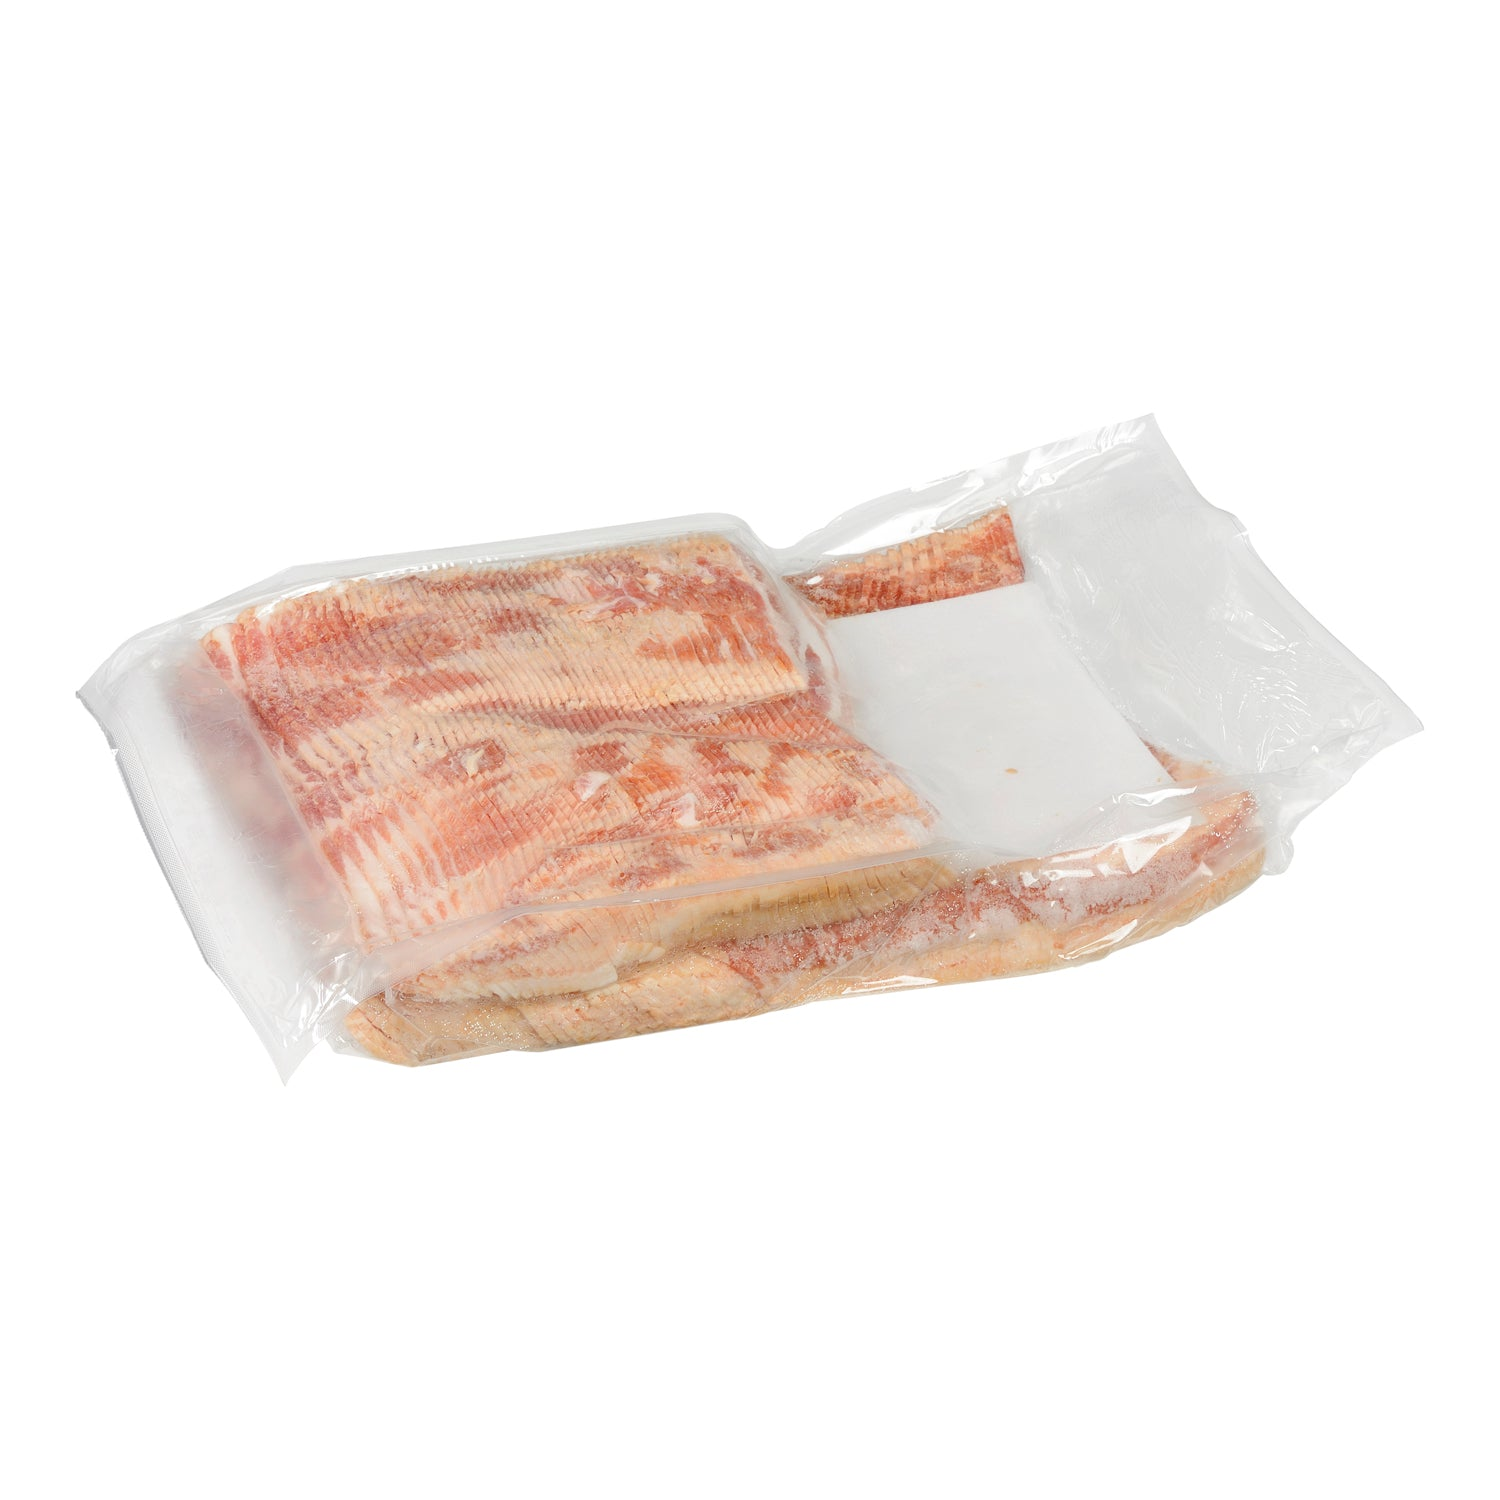 Sysco Classic Fresh Thick Sliced Centre Cut Bacon 5 kg - 1 Pack [$12.20/kg]